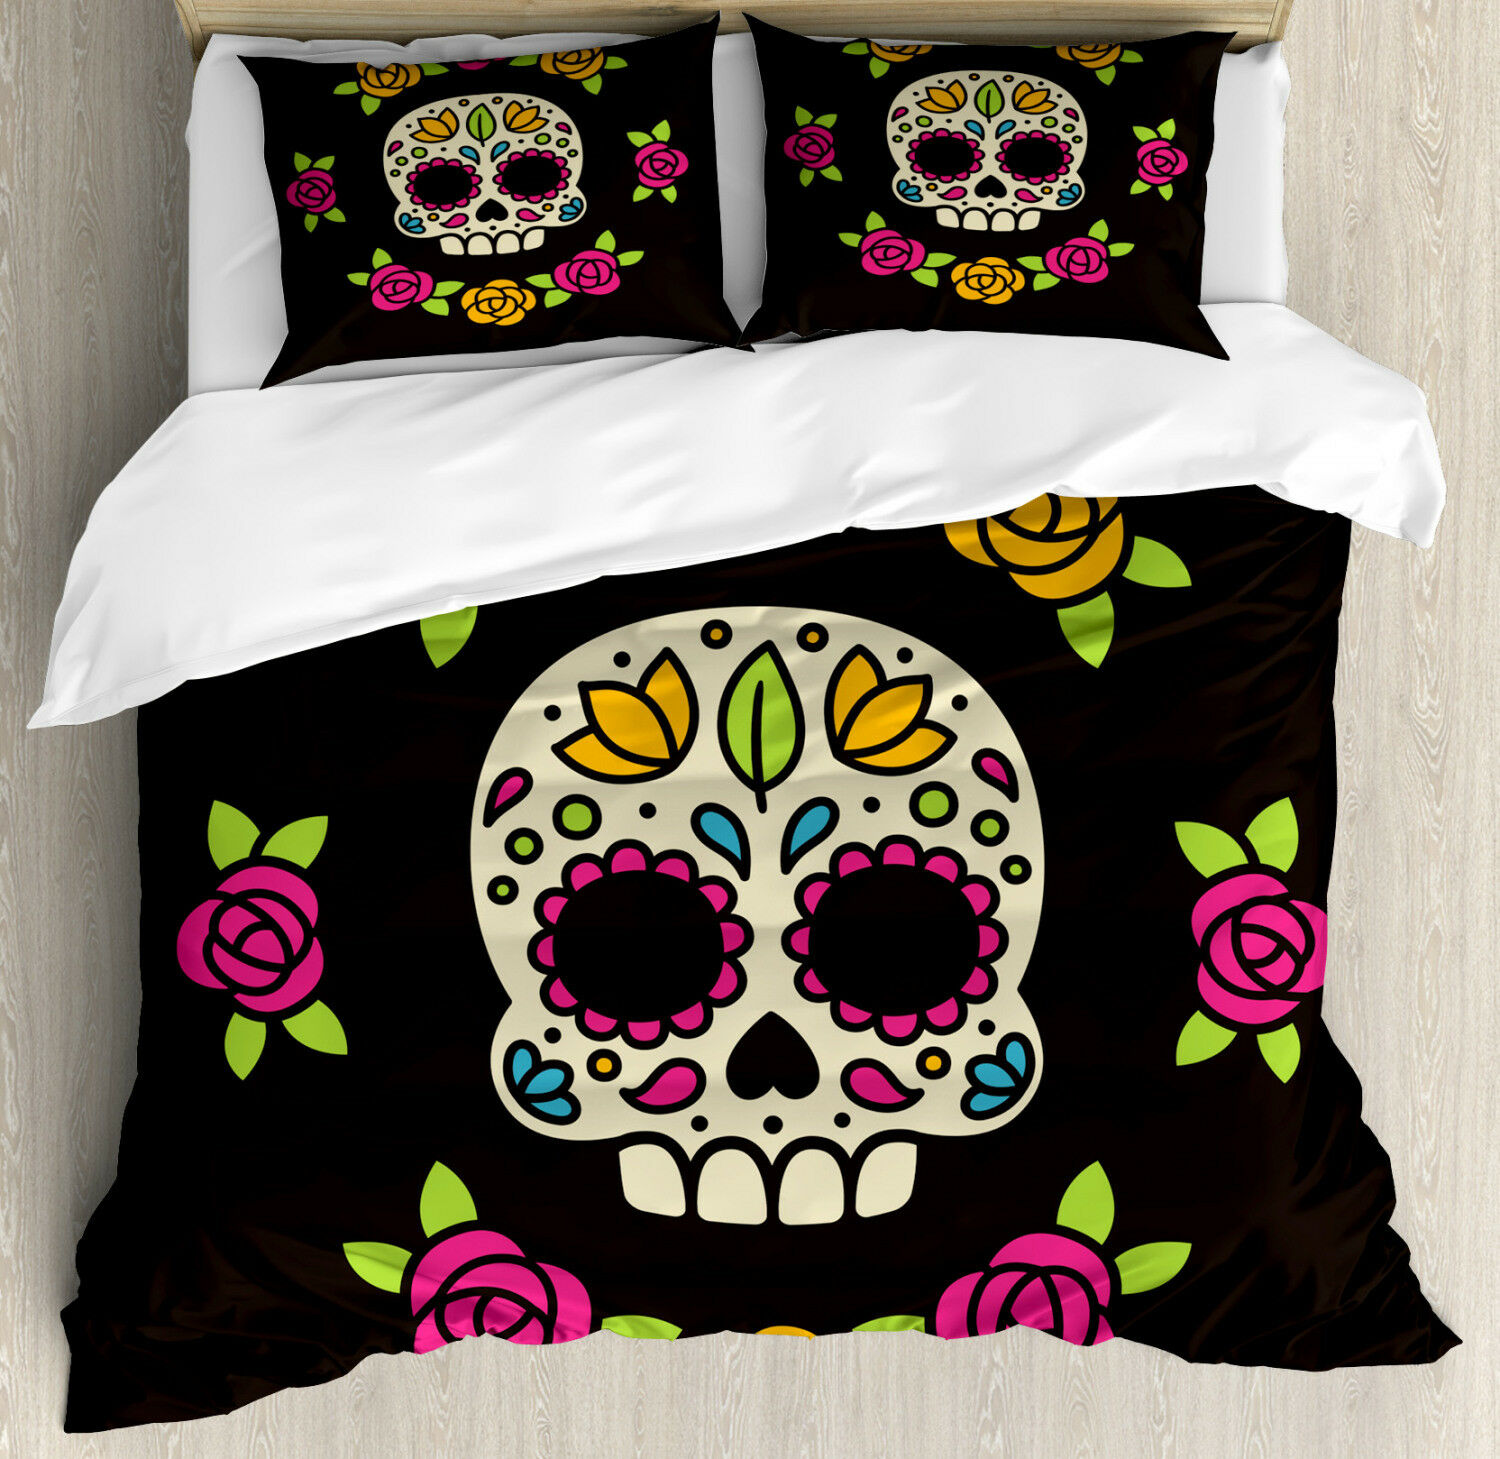 Sugar Skull Duvet Cover Set with Pillow Shams Floral Wreath Skull Print